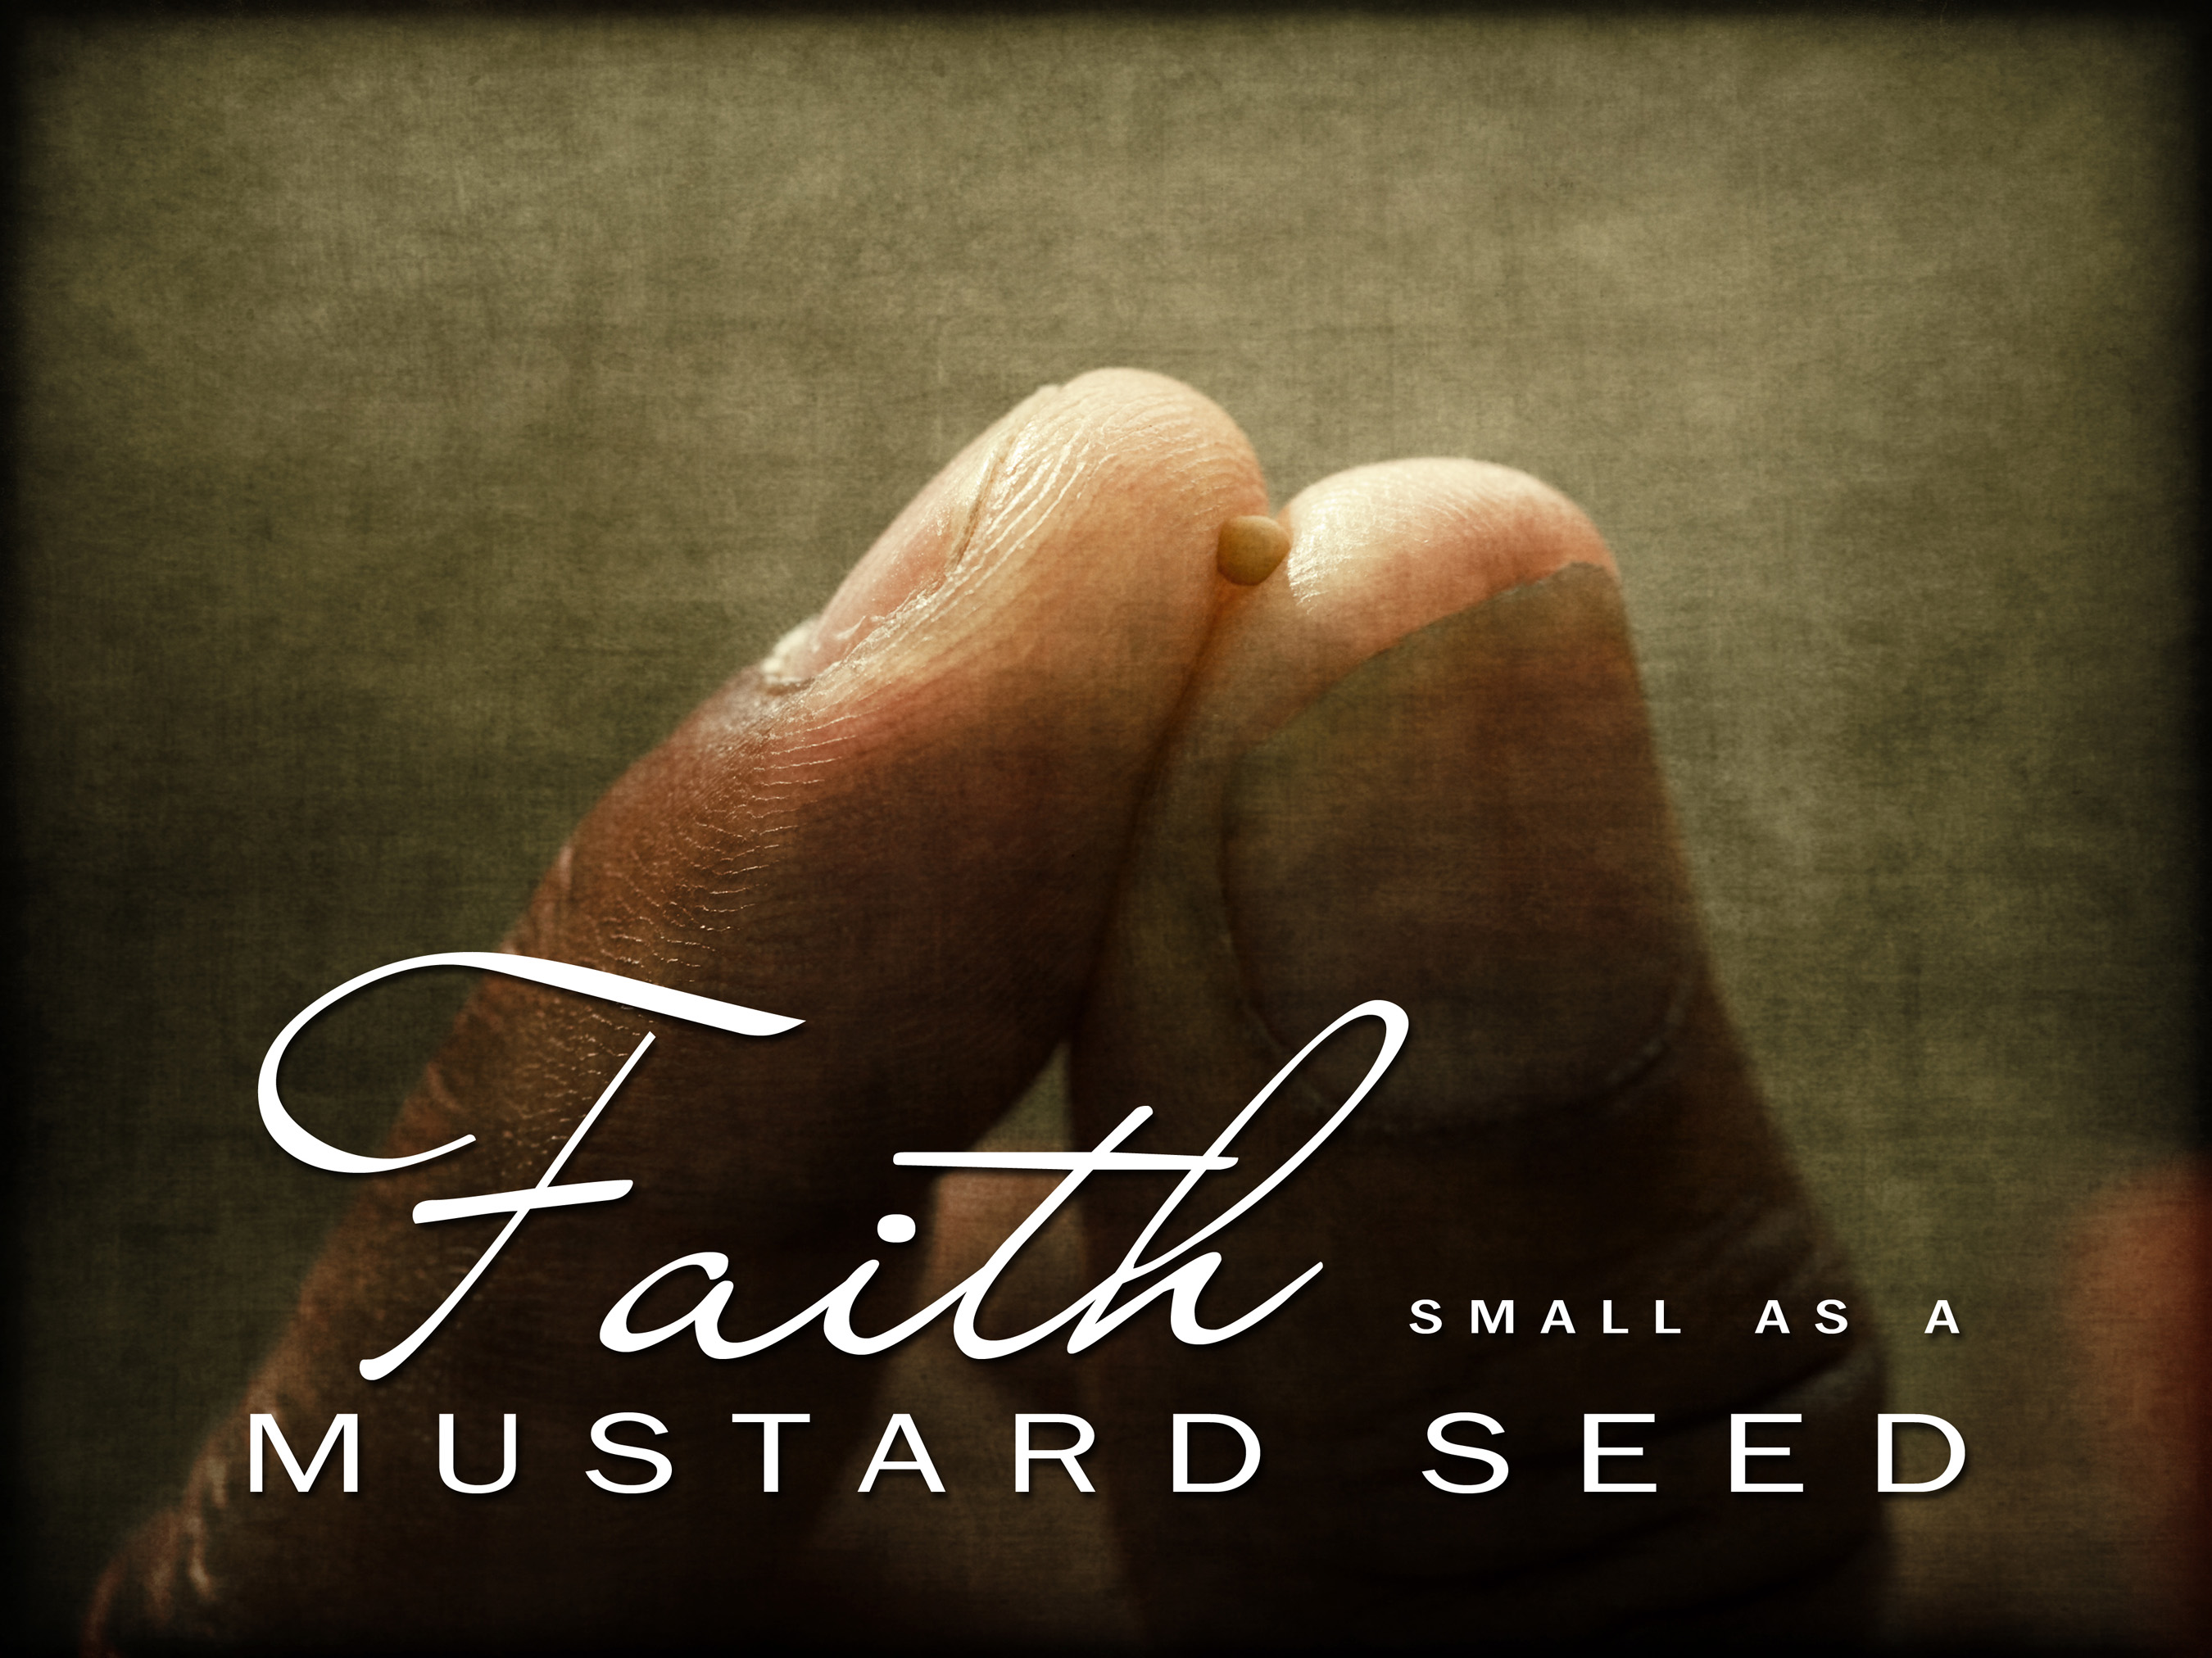 Just-a-little-can-move-mountains-faith-wallpaper-wp5606125